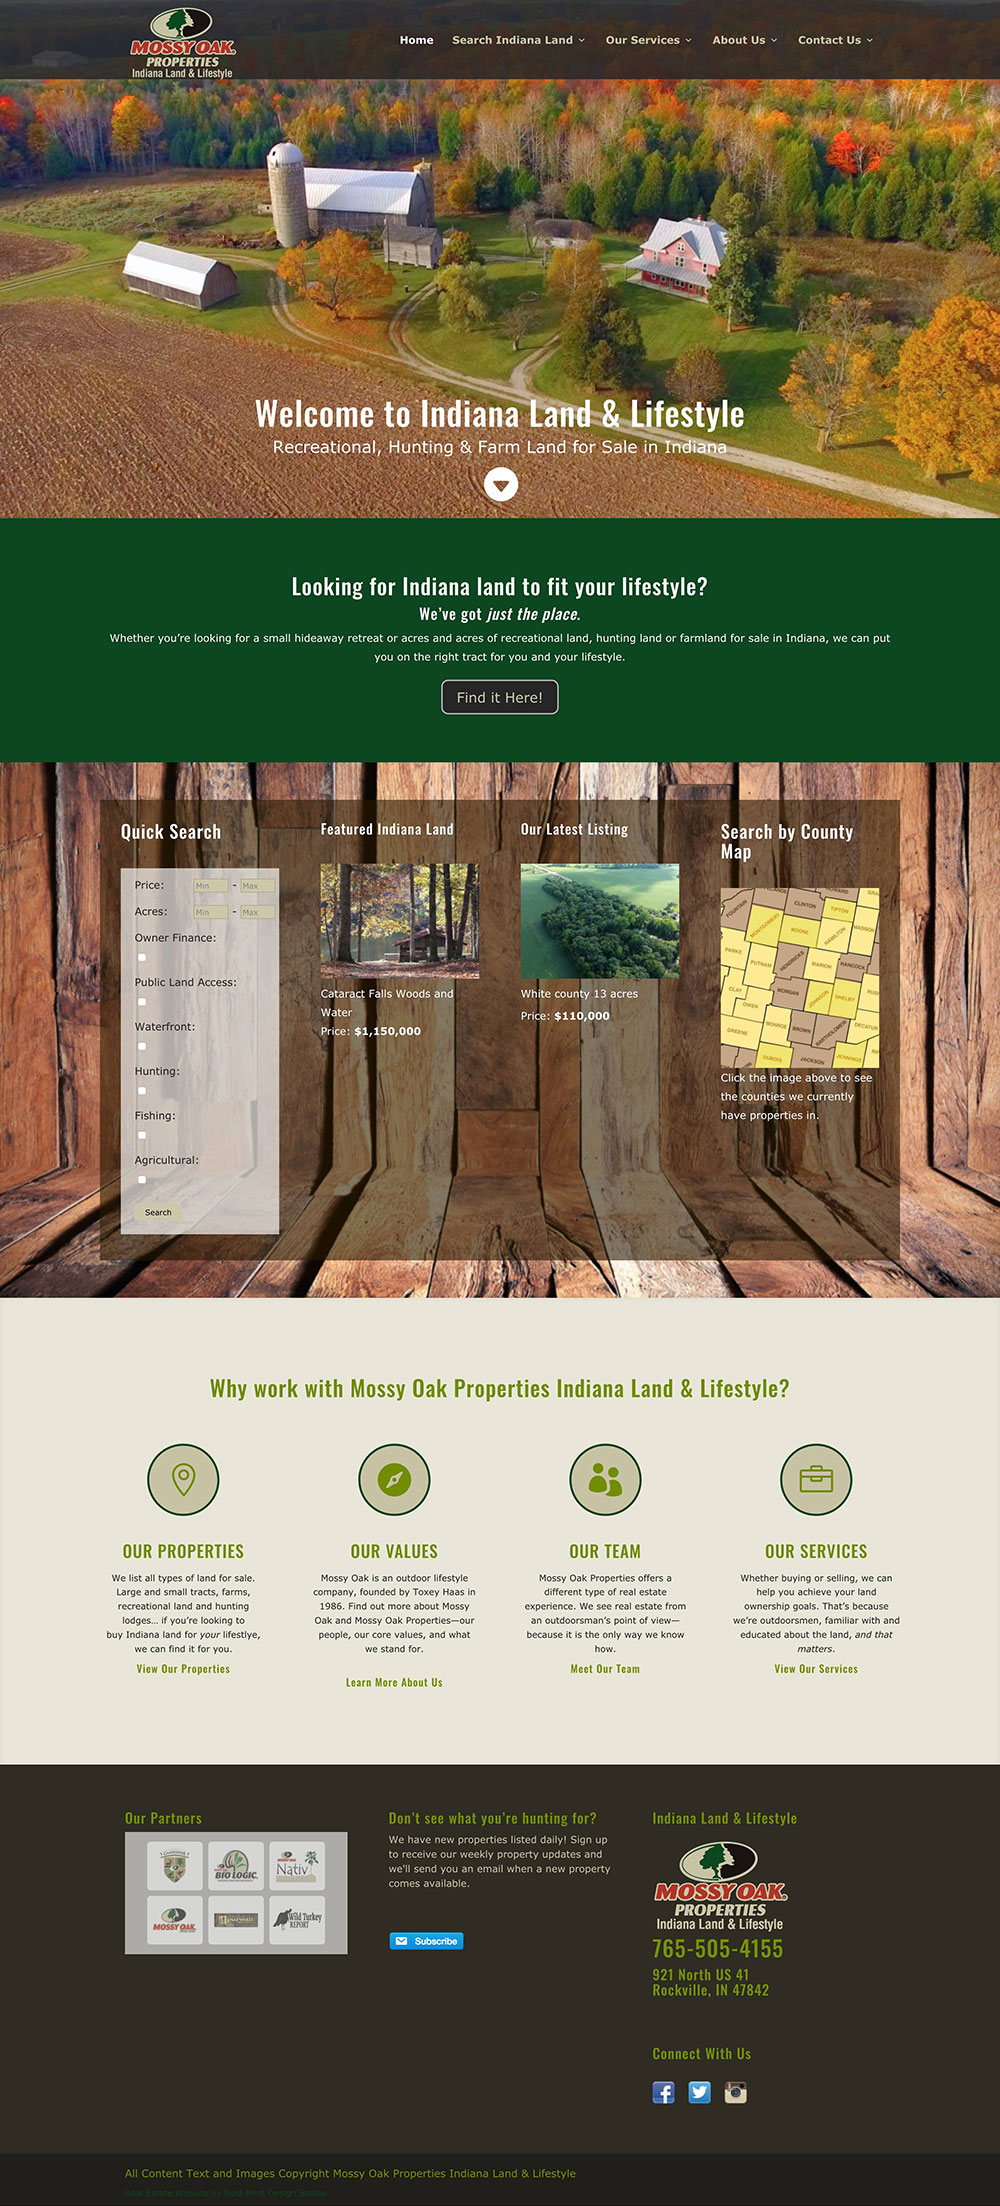 Mossy Oak Properties Indiana Land and Lifestyle